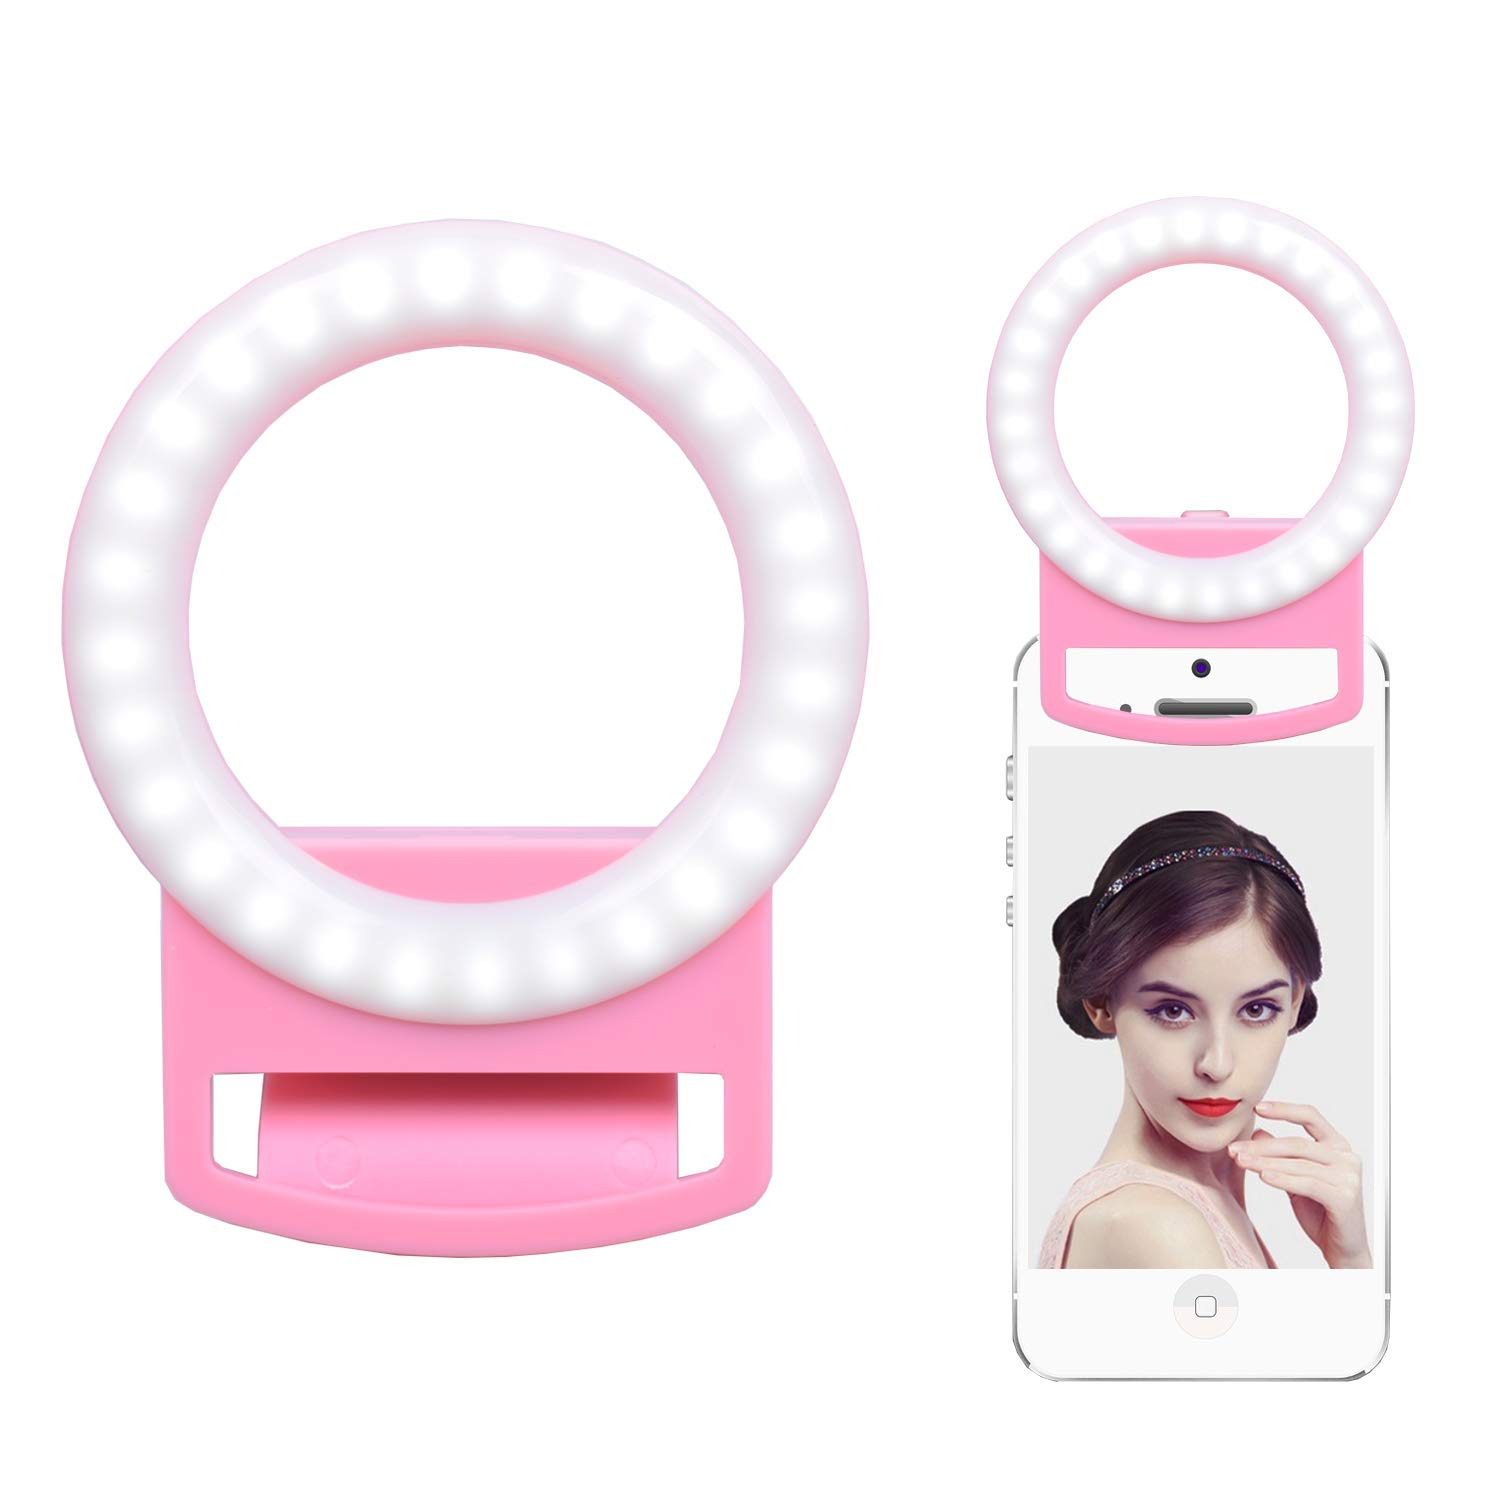 Selfie Light Ring, Selfie LED Light for Phone, Android, Tablet and Photography Camera, Electronics Gifts, Portable Professional Lighting with 9 Lighting Effects and USB Charging (White) Bealive